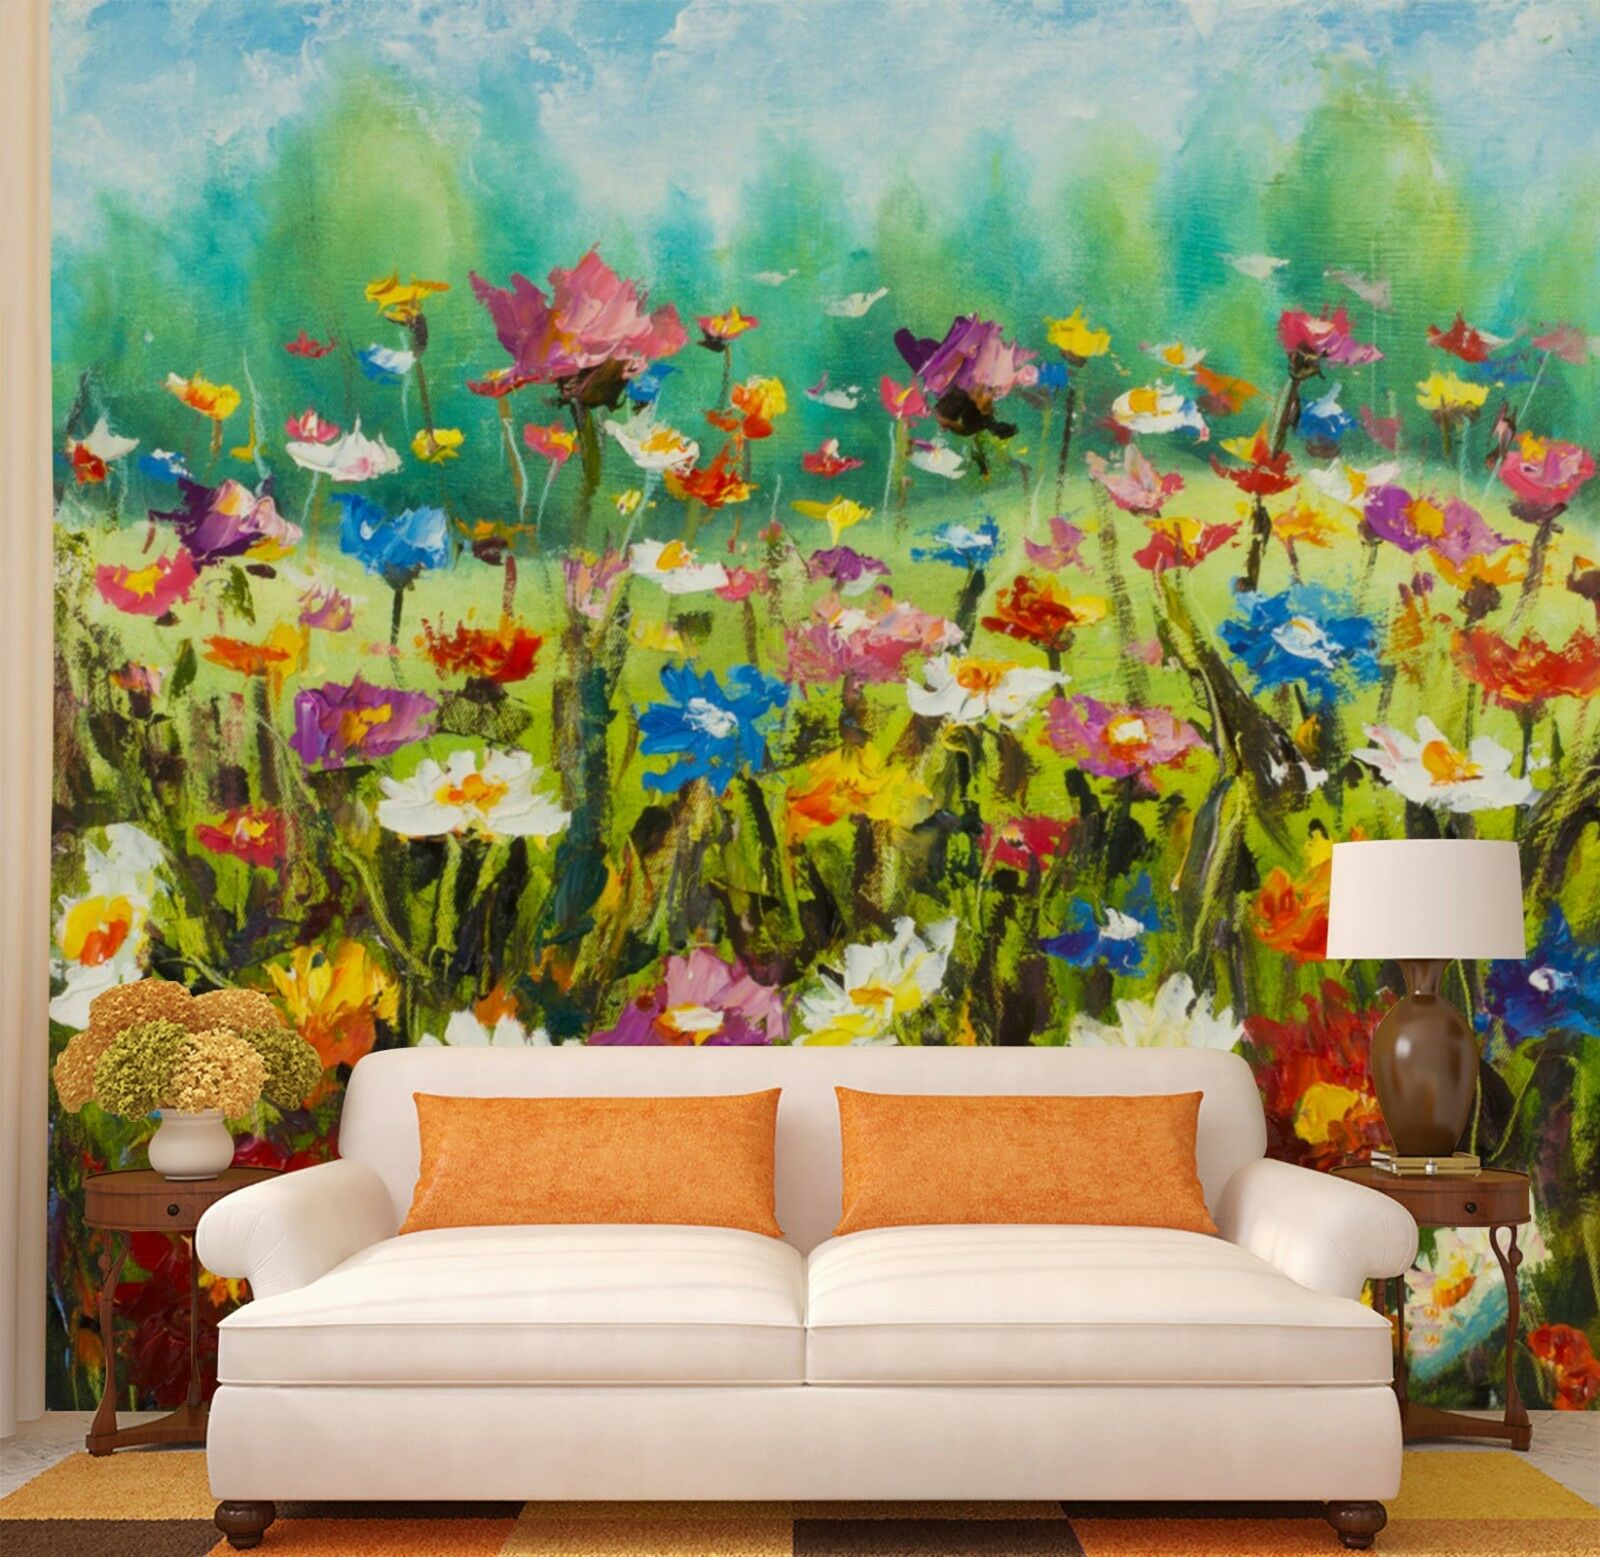 3D Painted Flower field Wall Paper Print Decal Wall Deco Indoor wall Mural